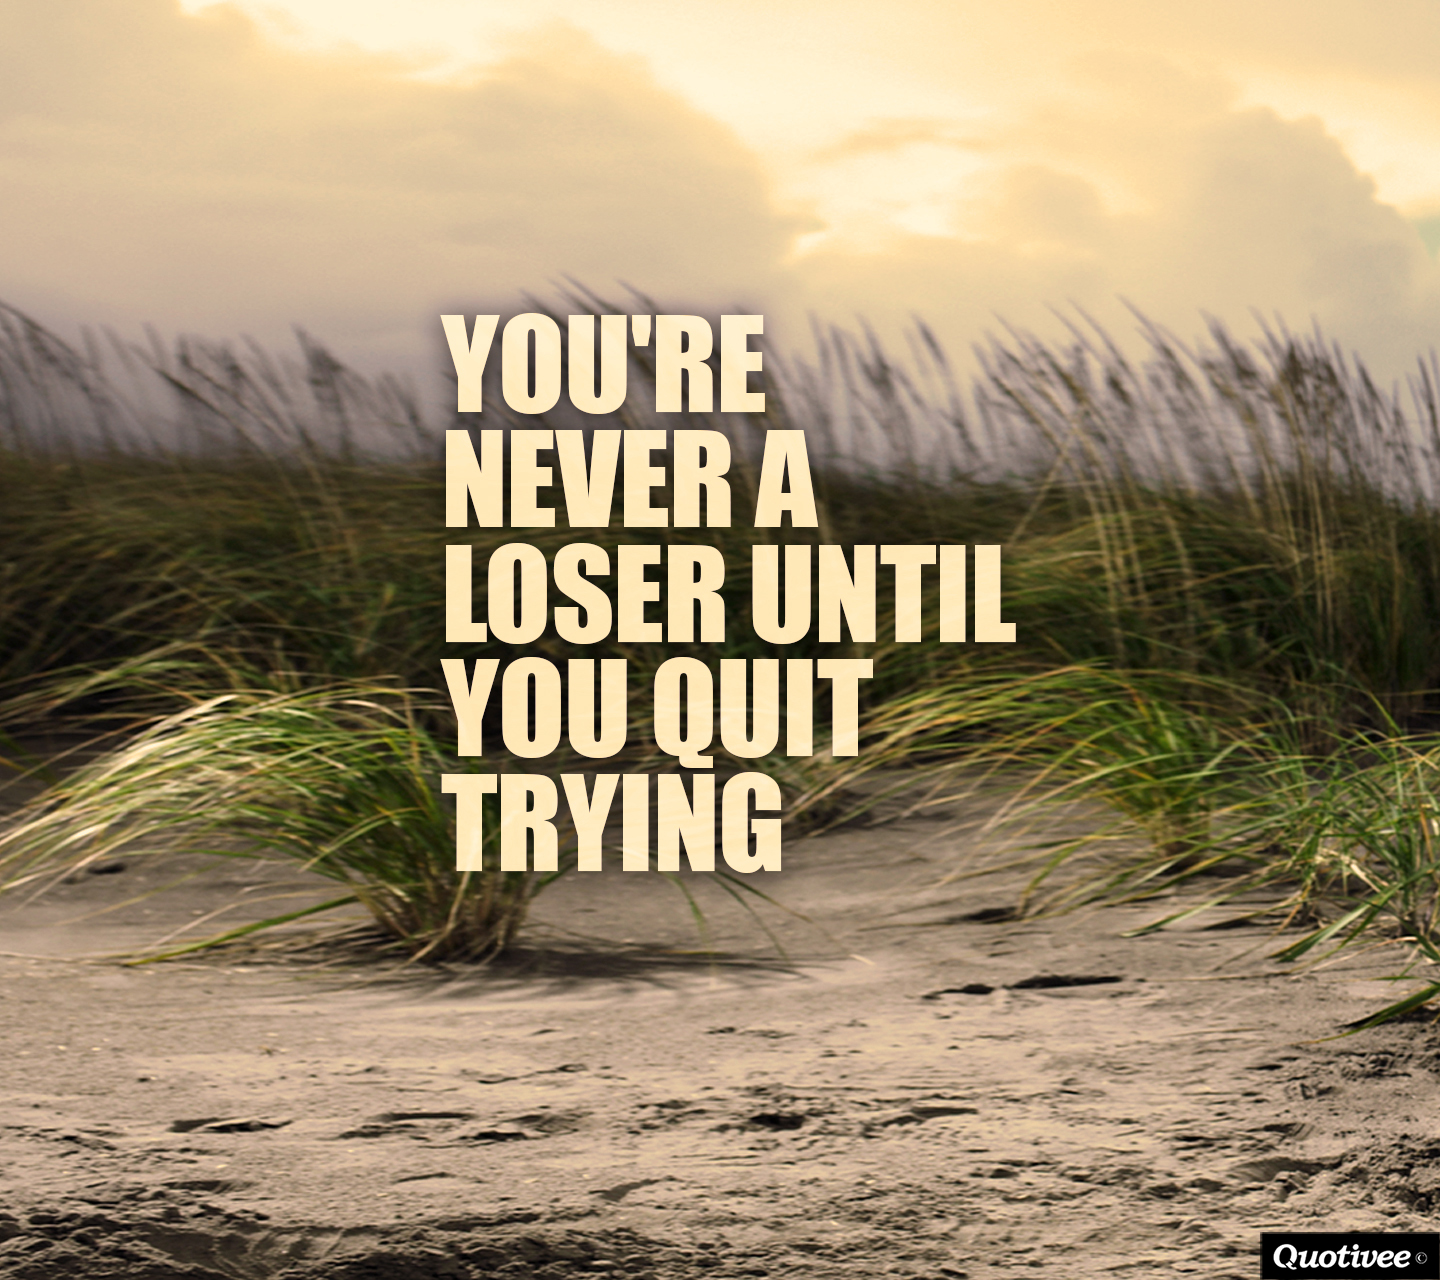 Love Quote Wallpaper In Hindi You Re Never A Loser Until You Quit Trying Inspirational